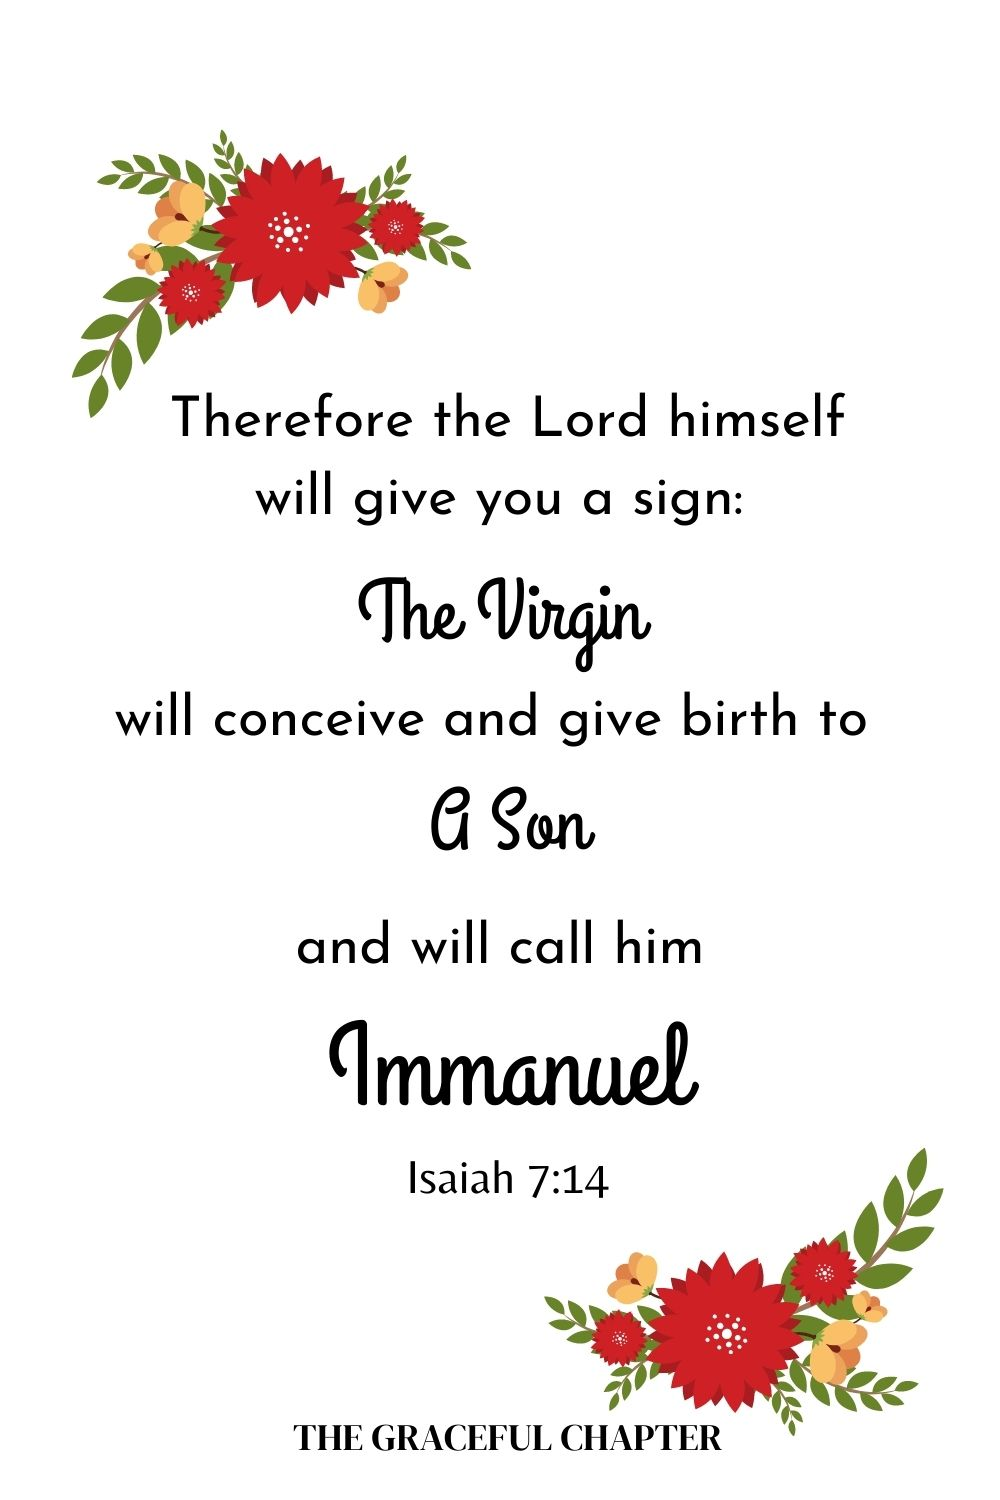 Therefore the Lord himself will give you a sign: The virgin will conceive and give birth to a son, and will call him Immanuel. Isaiah 7:14